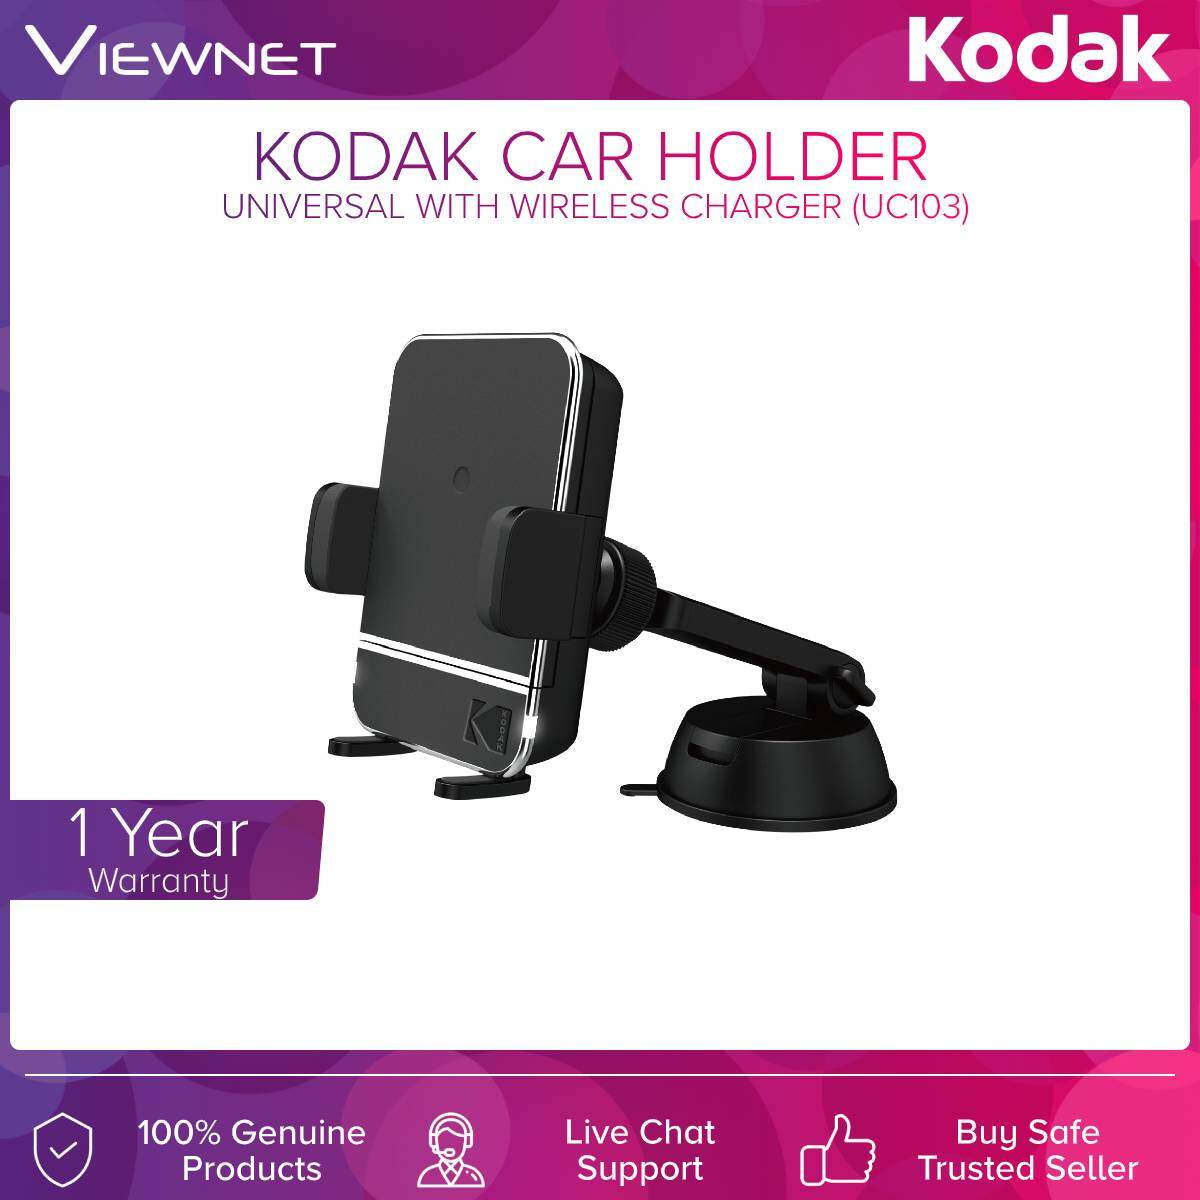 Kodak (UC103) Car Holder Universal With Wireless Charge